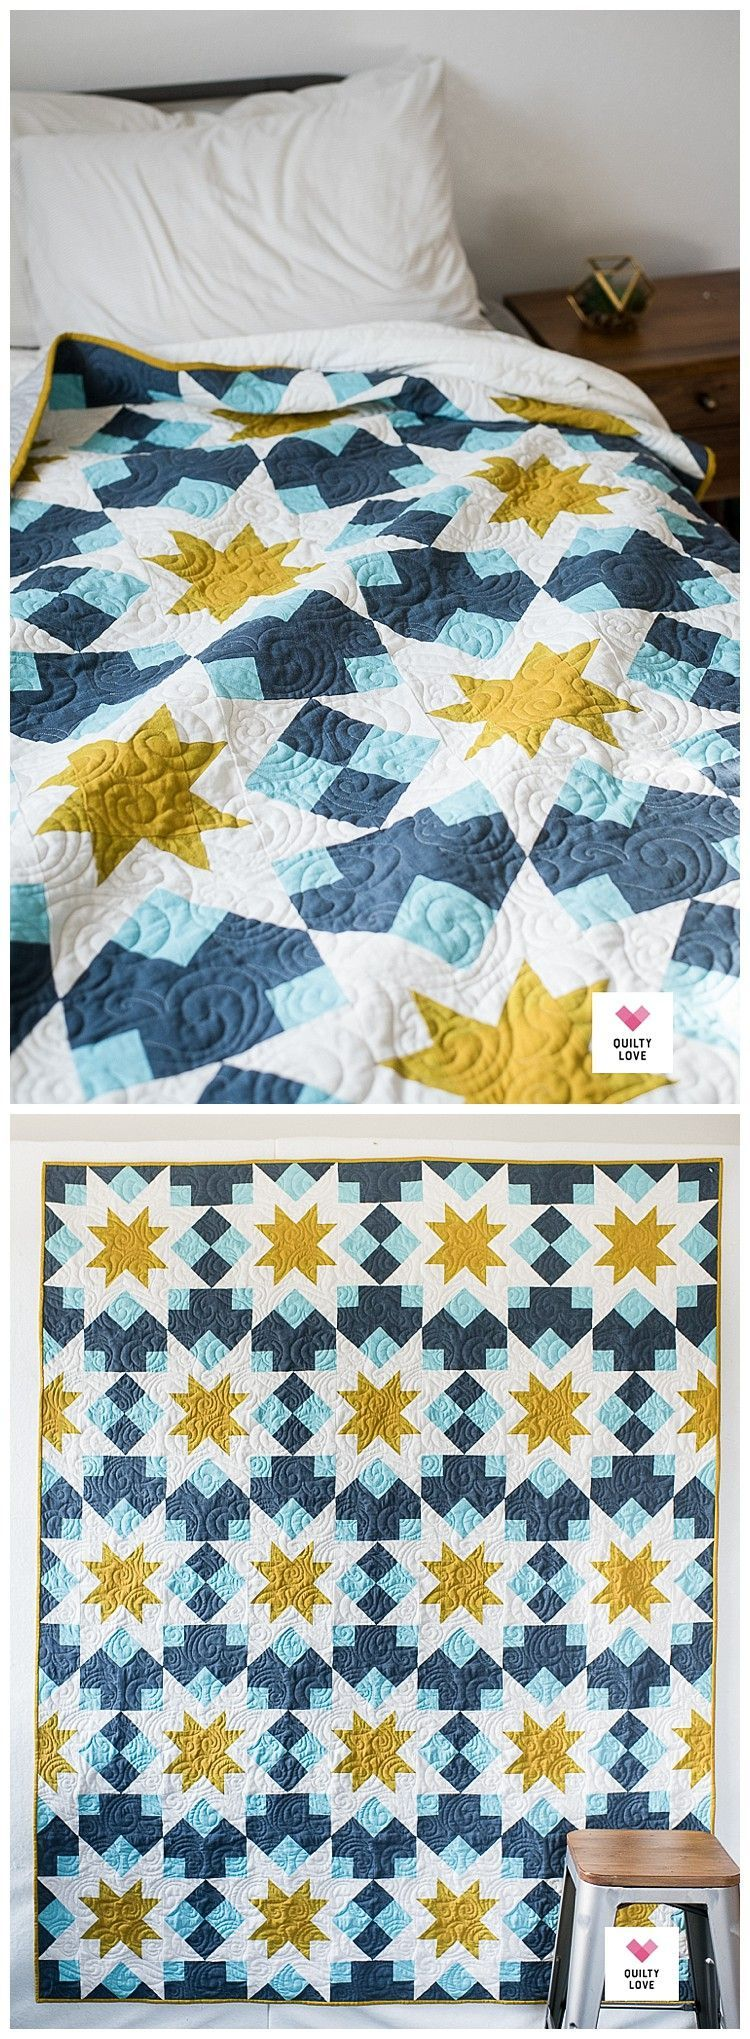 Night Stars Quilt - A bold star quilt pattern - Quilty Love #modernquiltingdesigns